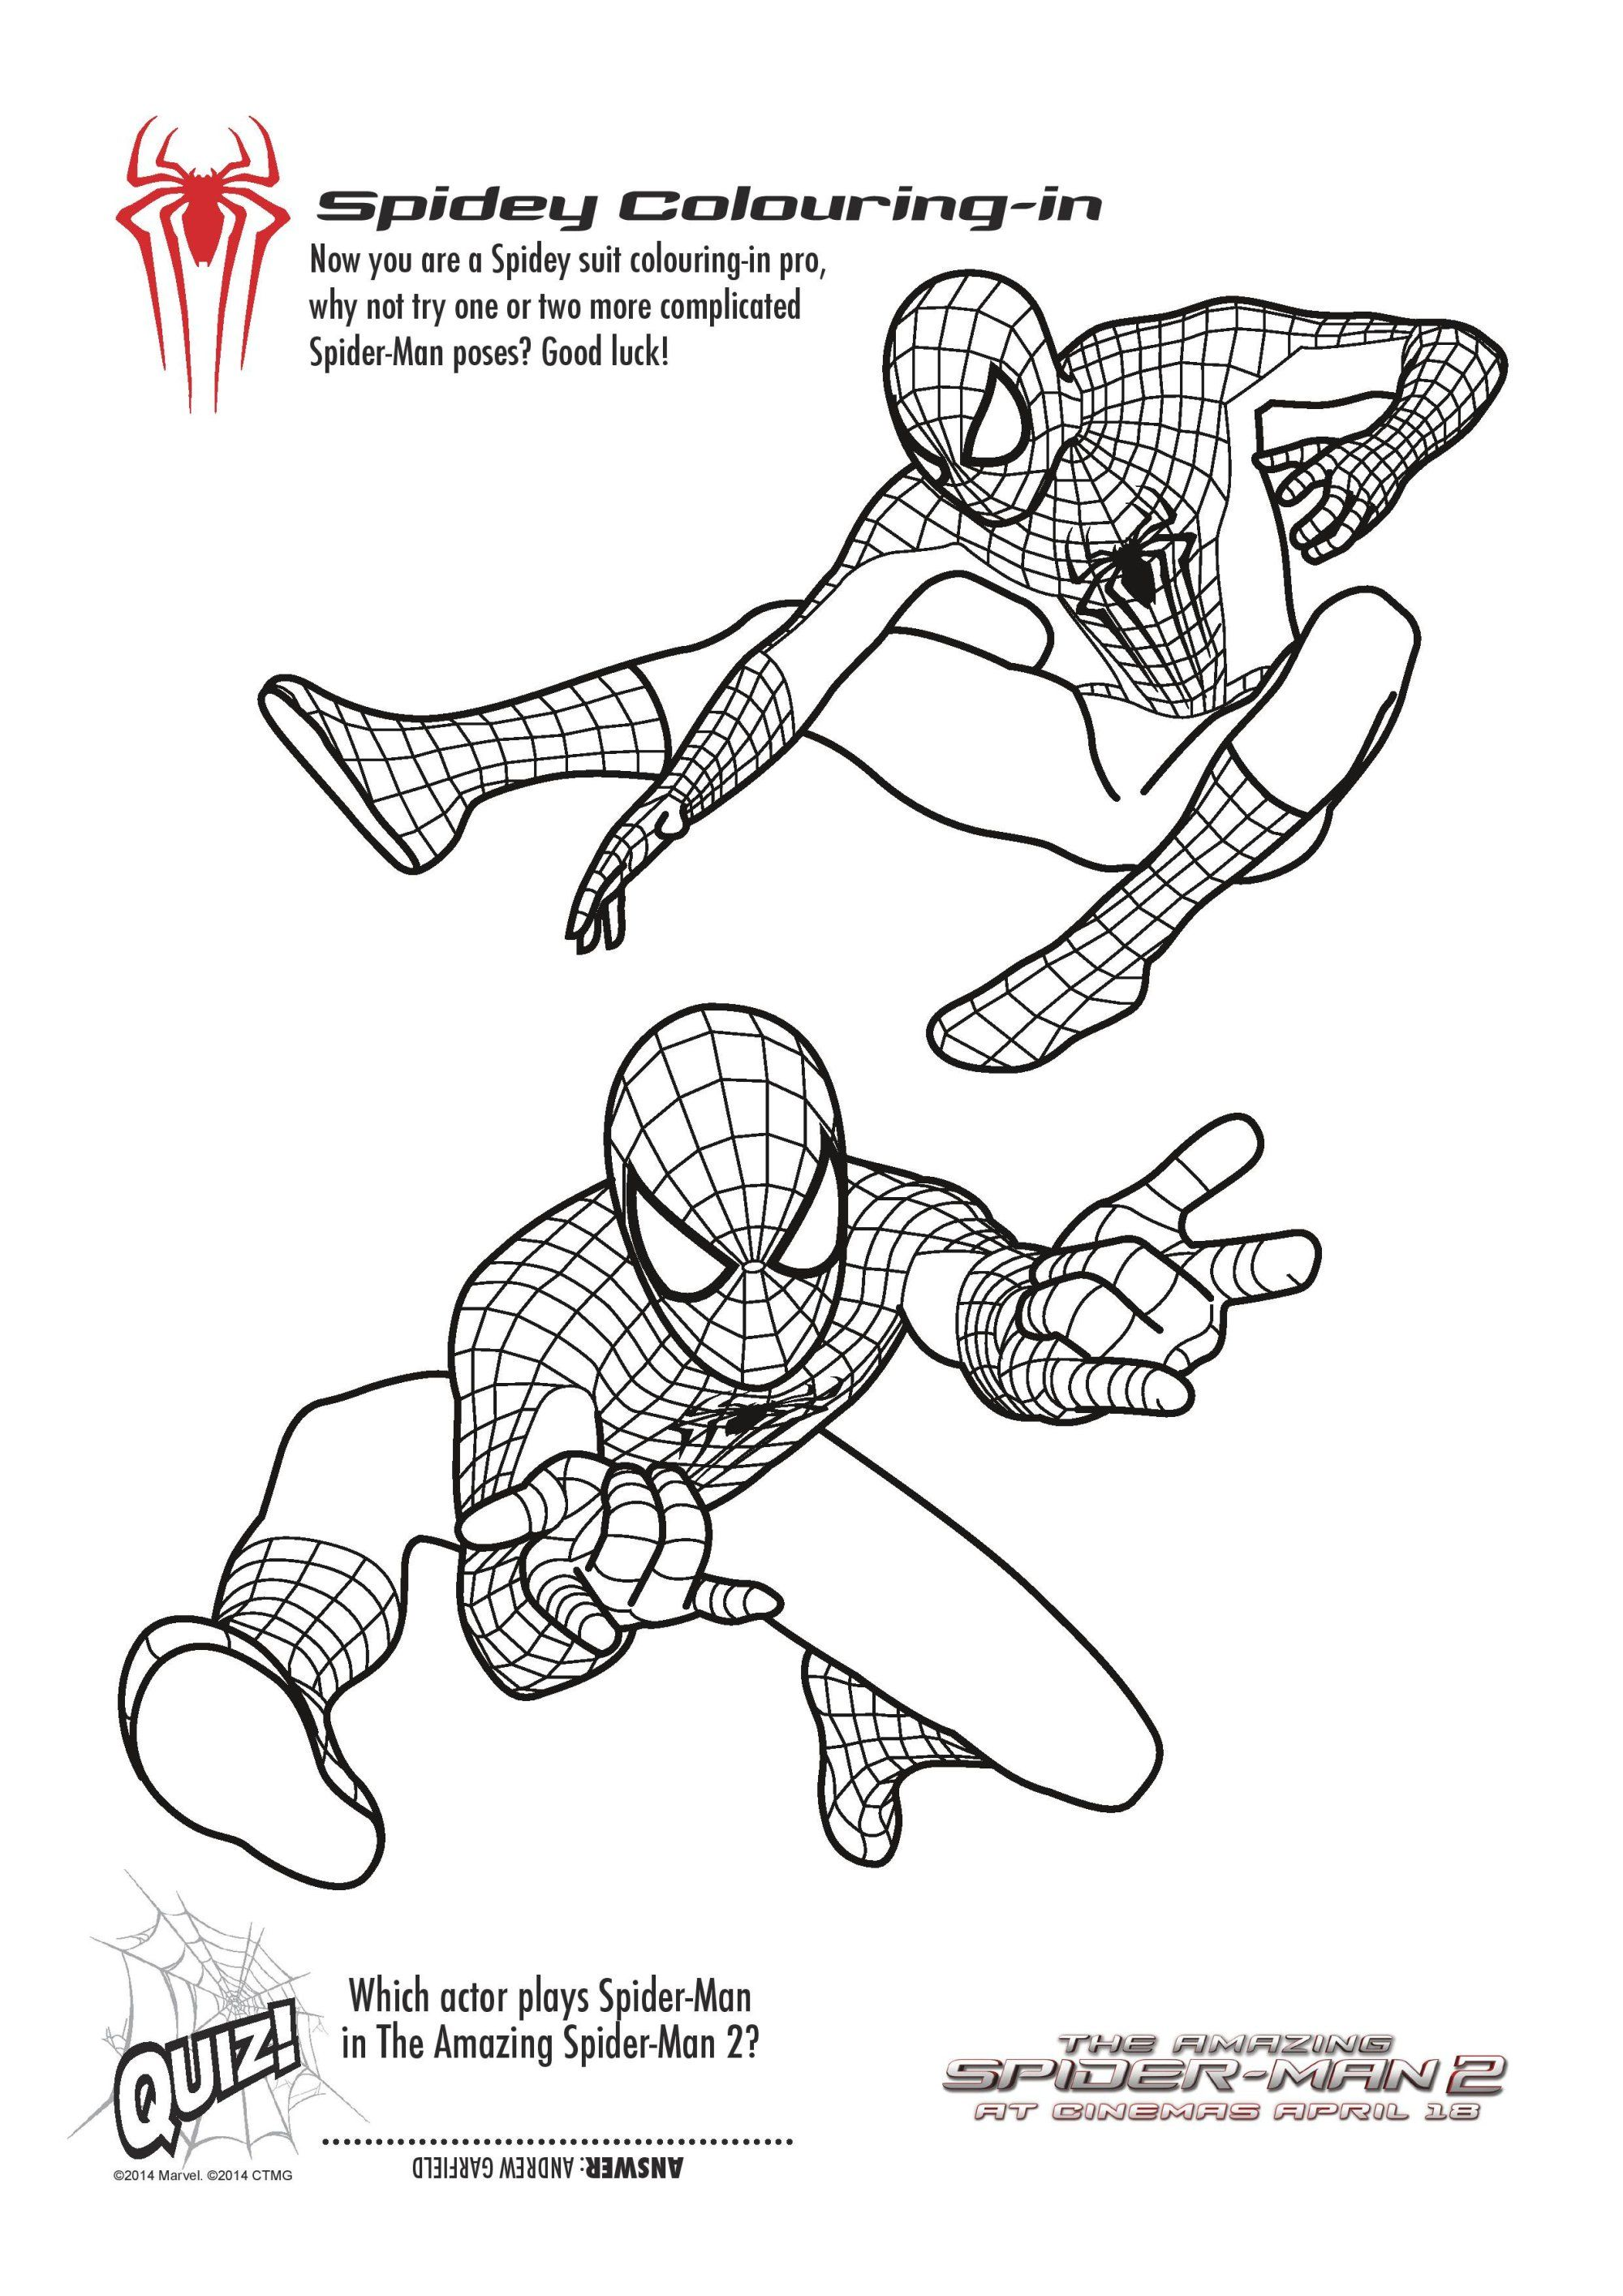 spider-man colouring pages free printables  Spiderman coloring